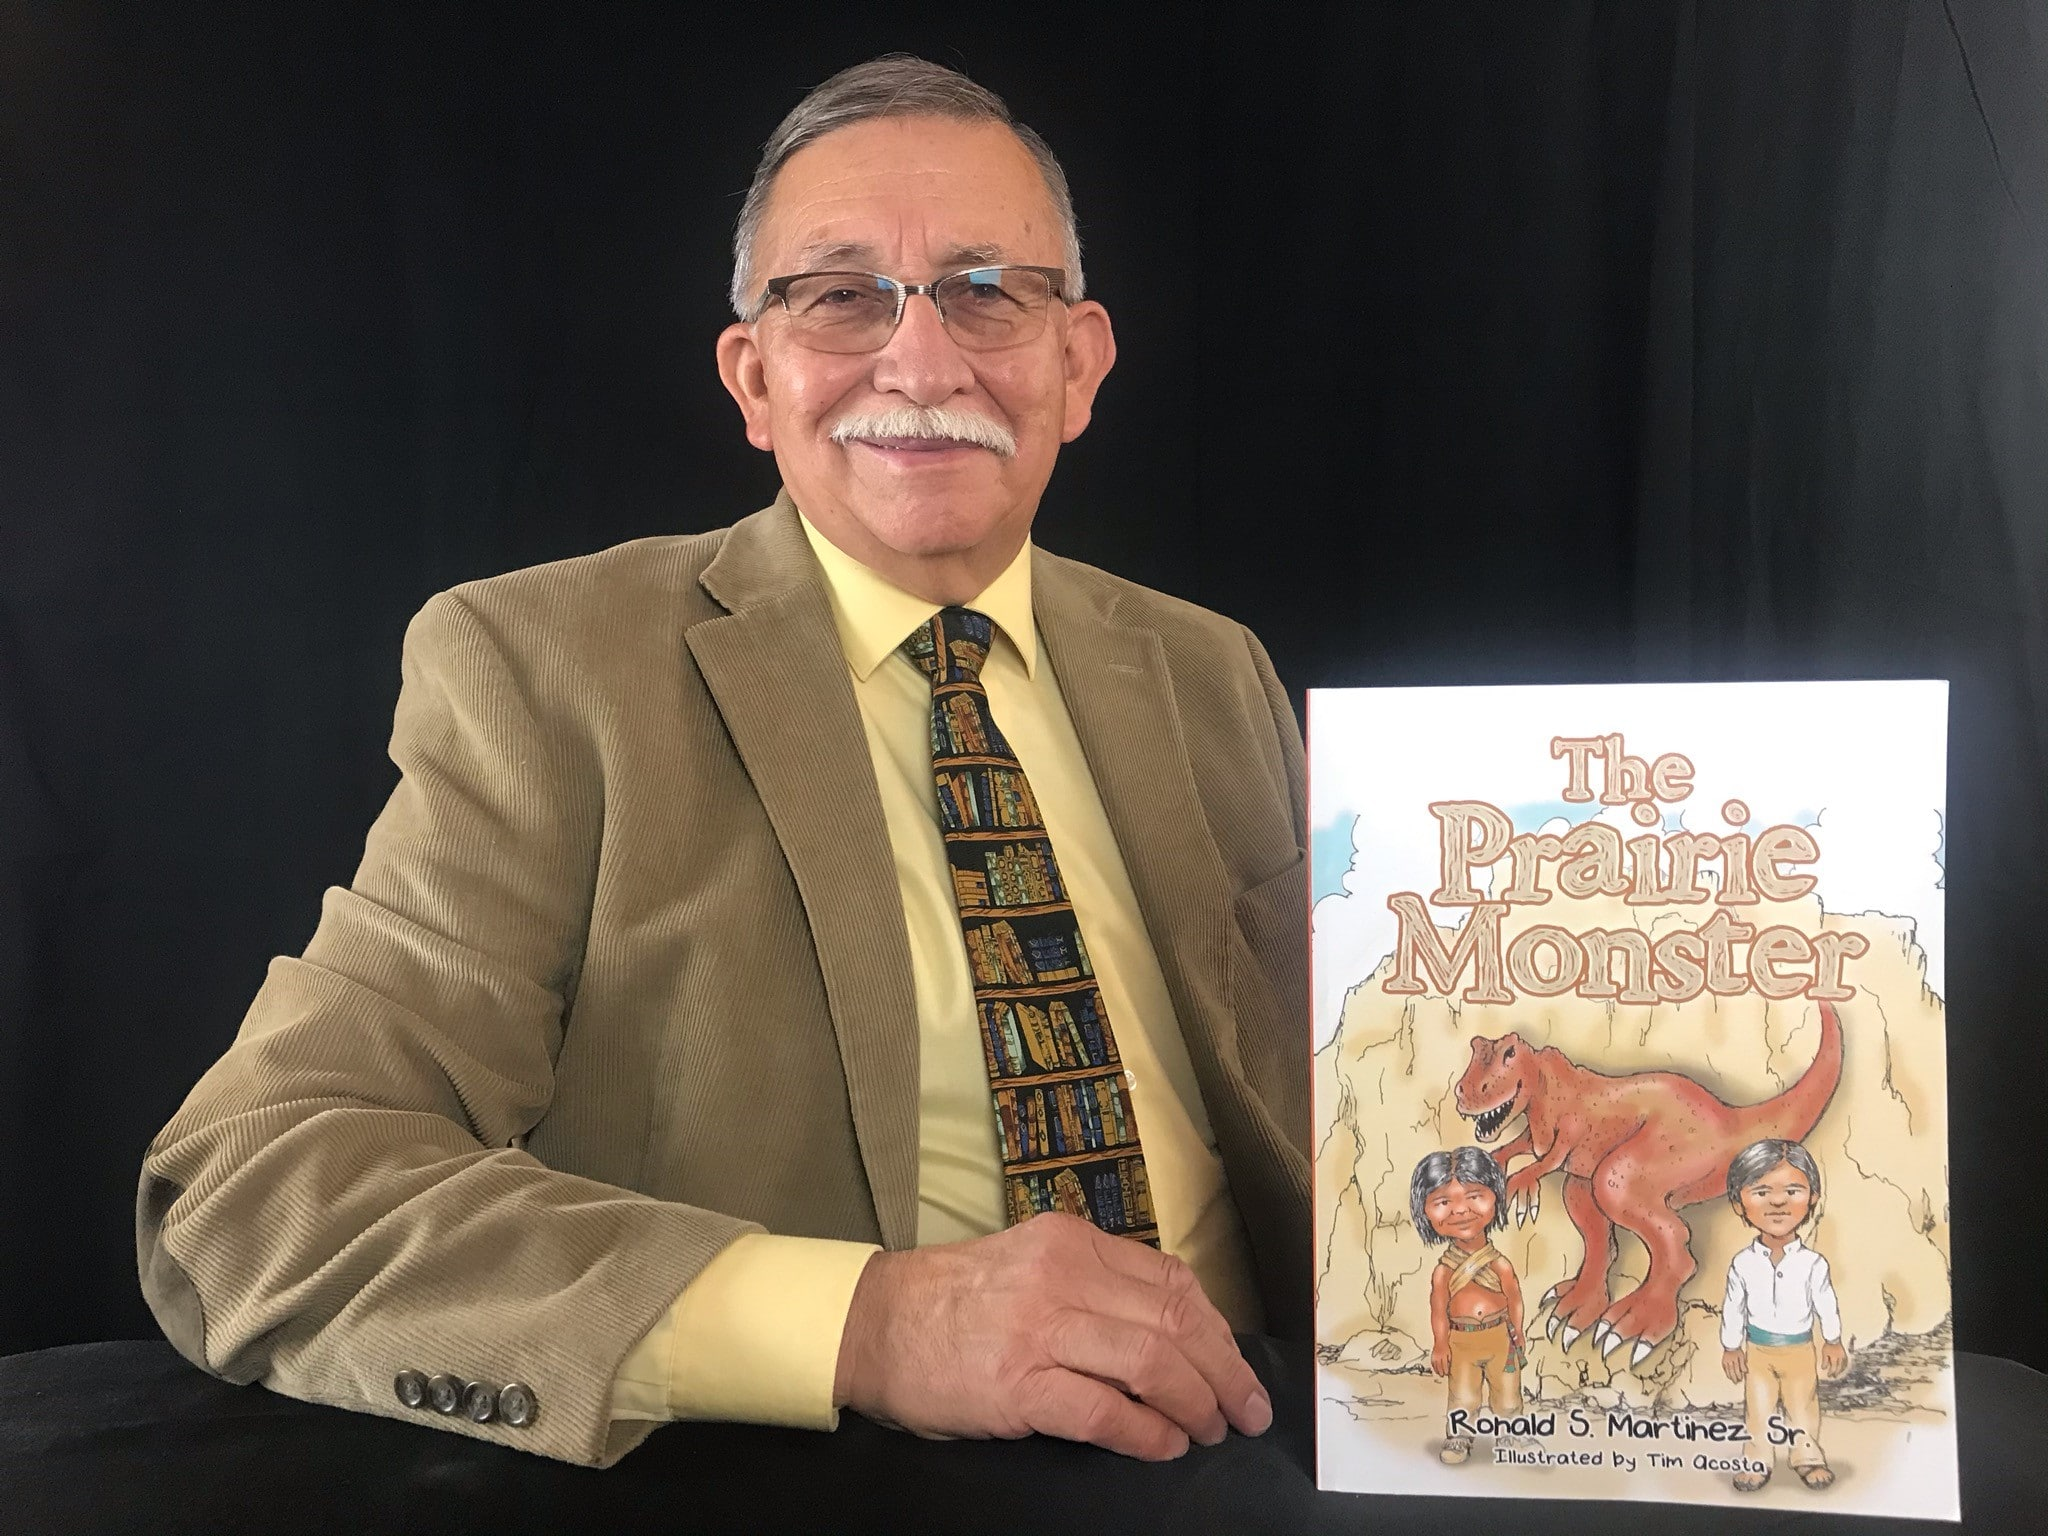 The Prairie Monster with Author Ronald S. Martinez Sr.